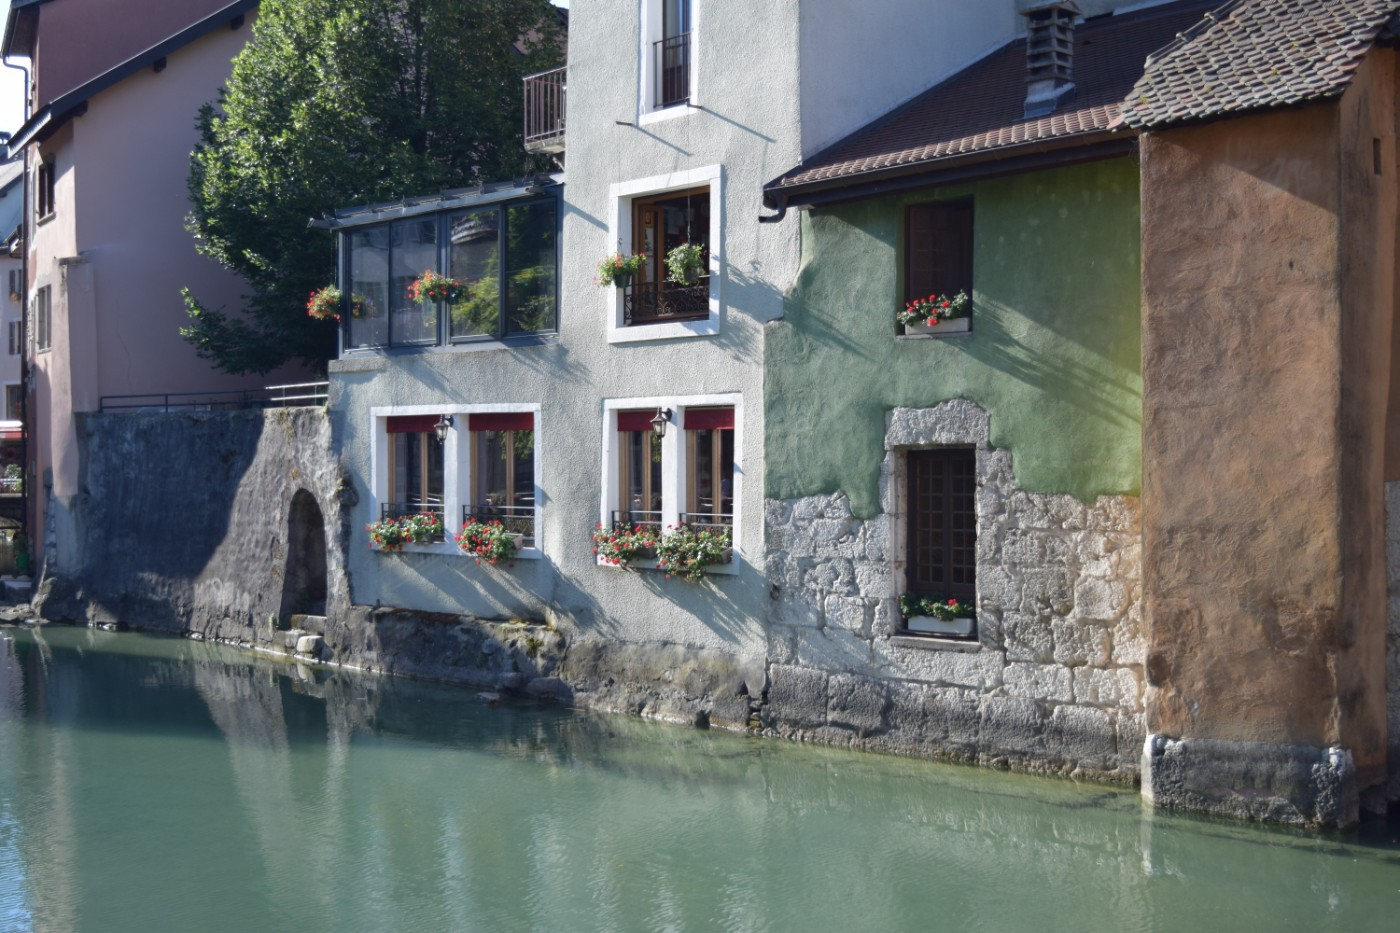 A green building and an orange building next to the canal that runs through Annecy's old town.